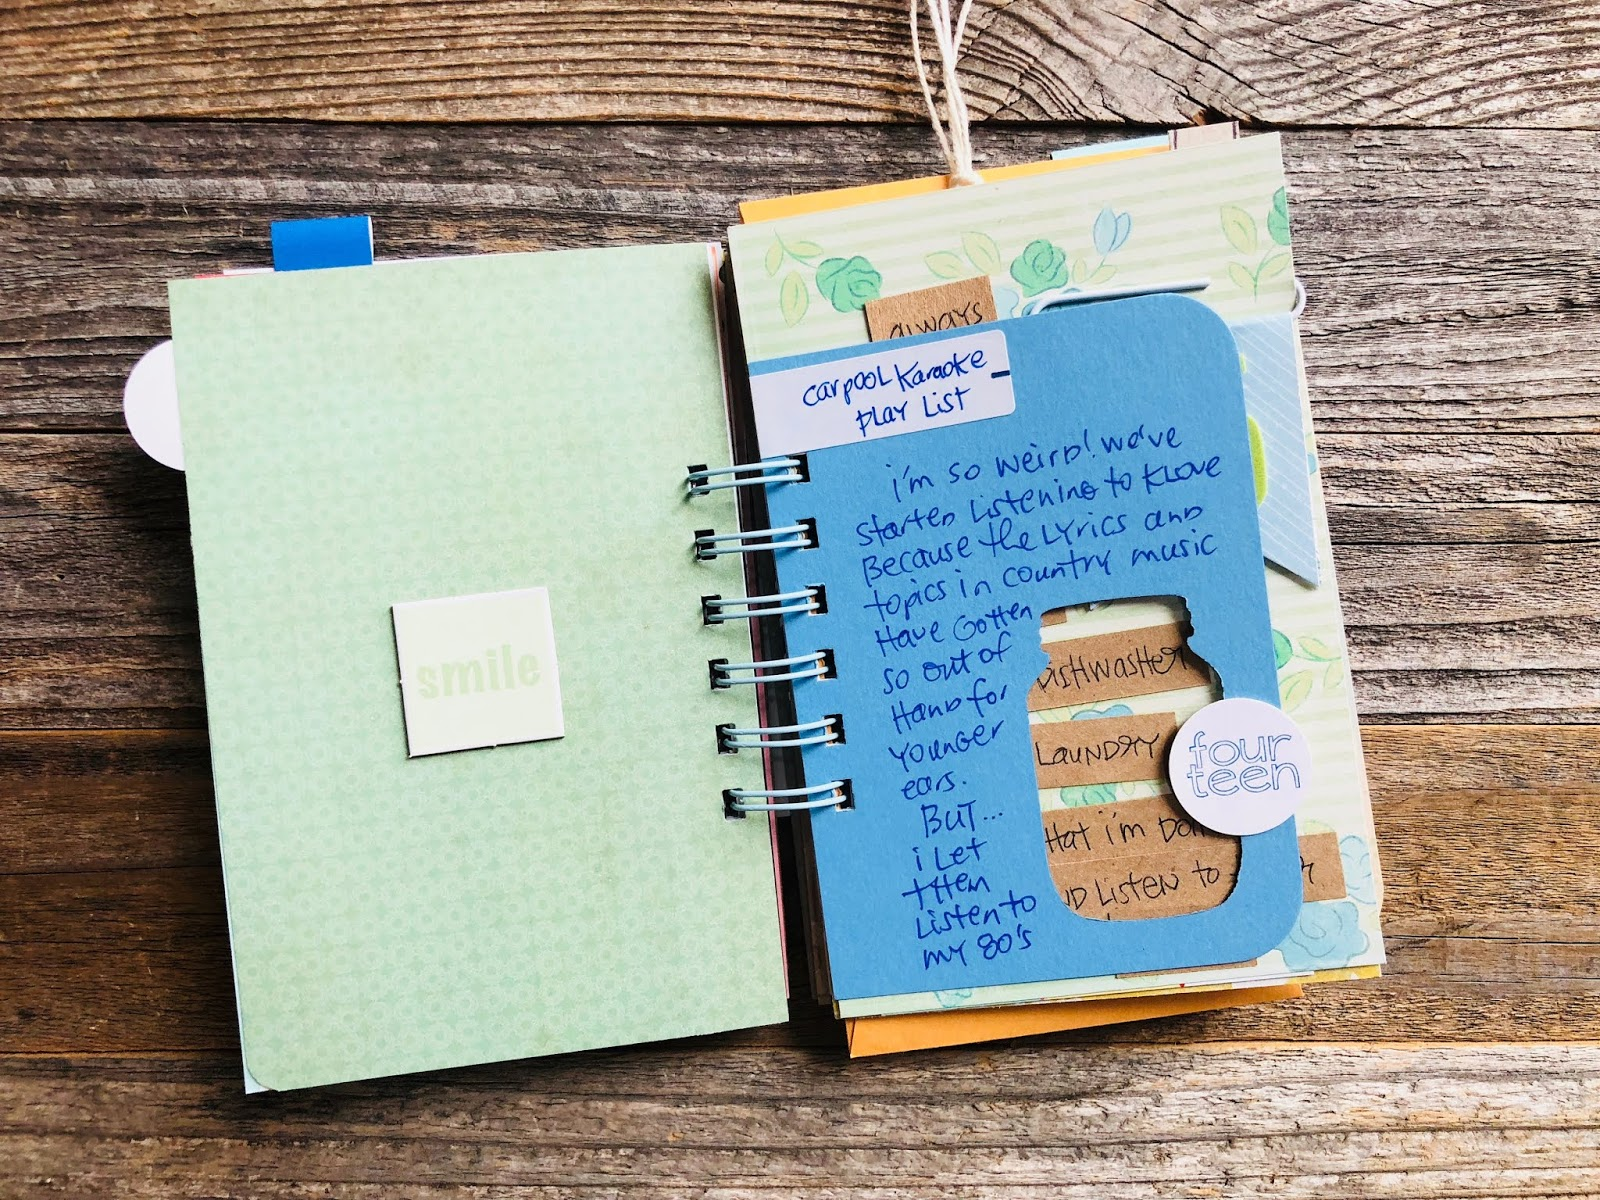 #30lists #30 Days of Lists #September 2018 #lists #list prompts #journaling #mixed media journal #smashbook #junk journal